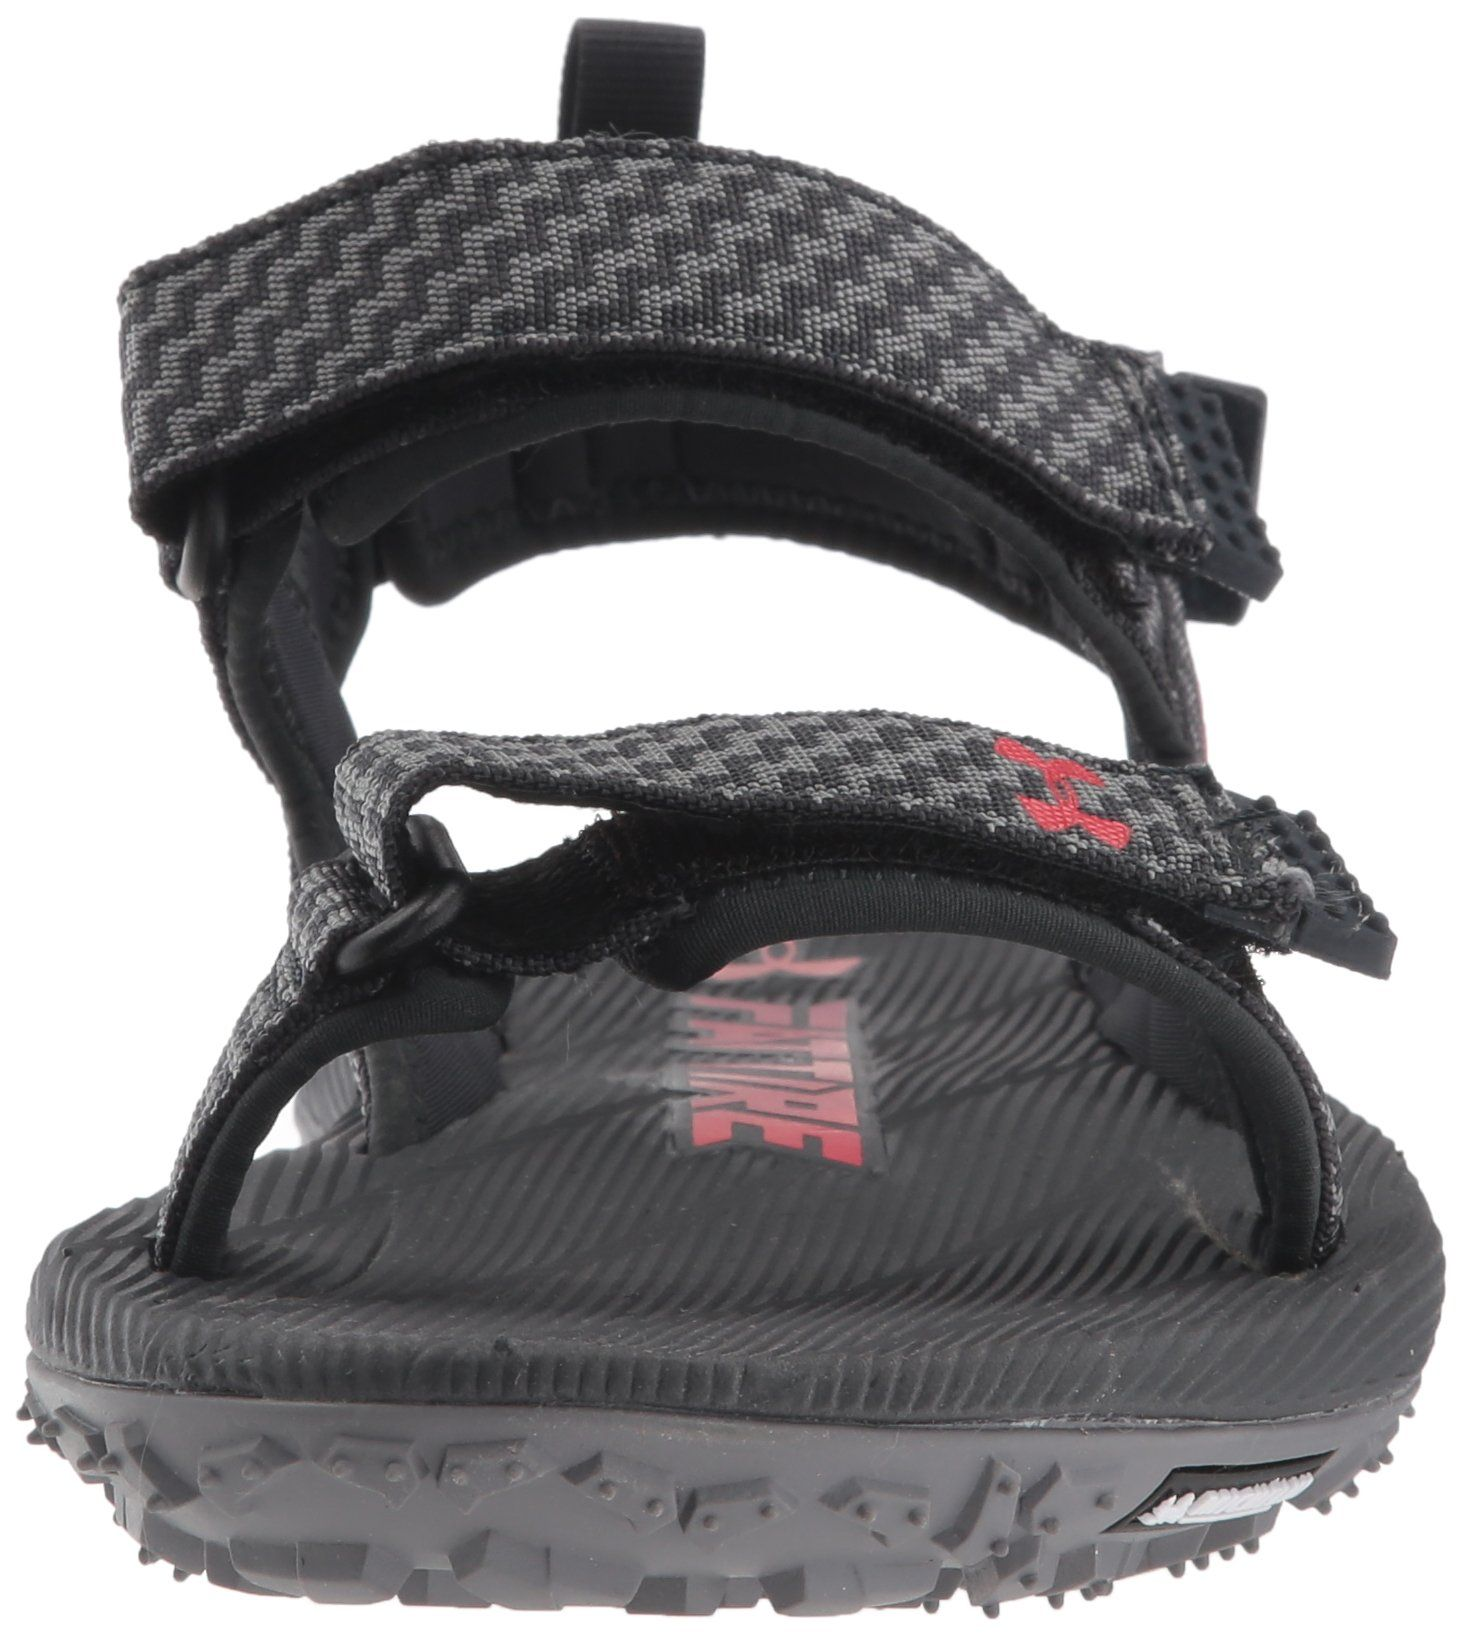 huge selection of 646e5 d3bec Under Armour Mens Fat Tire Sandals Anthracite/Zinc Gray ...